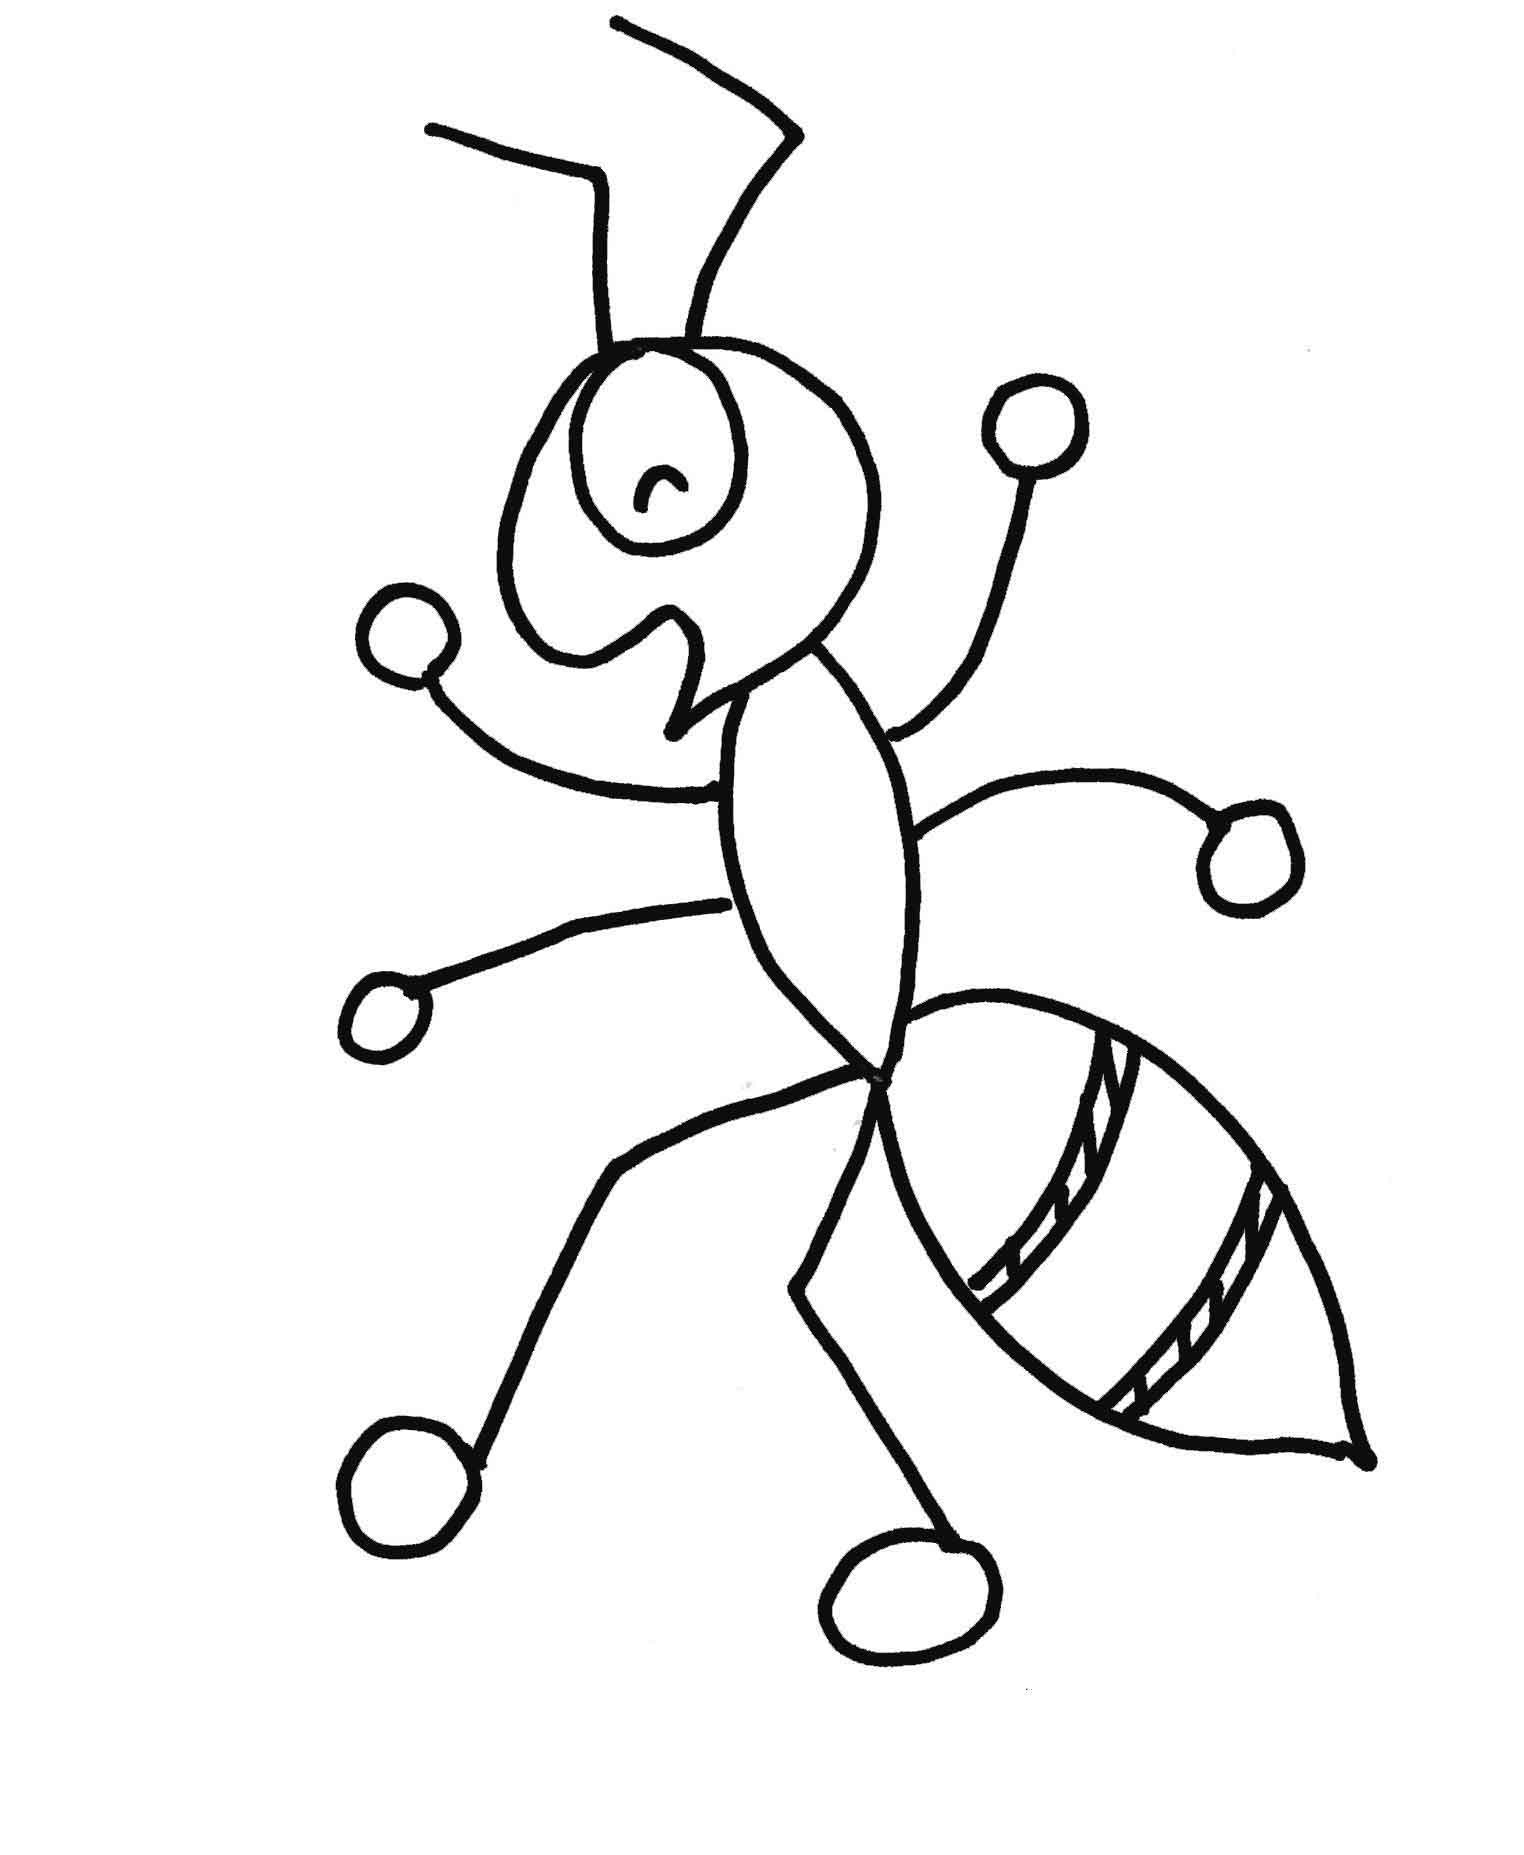 Free Printable Ant Coloring Pages For Kids Coloring Pages Ant